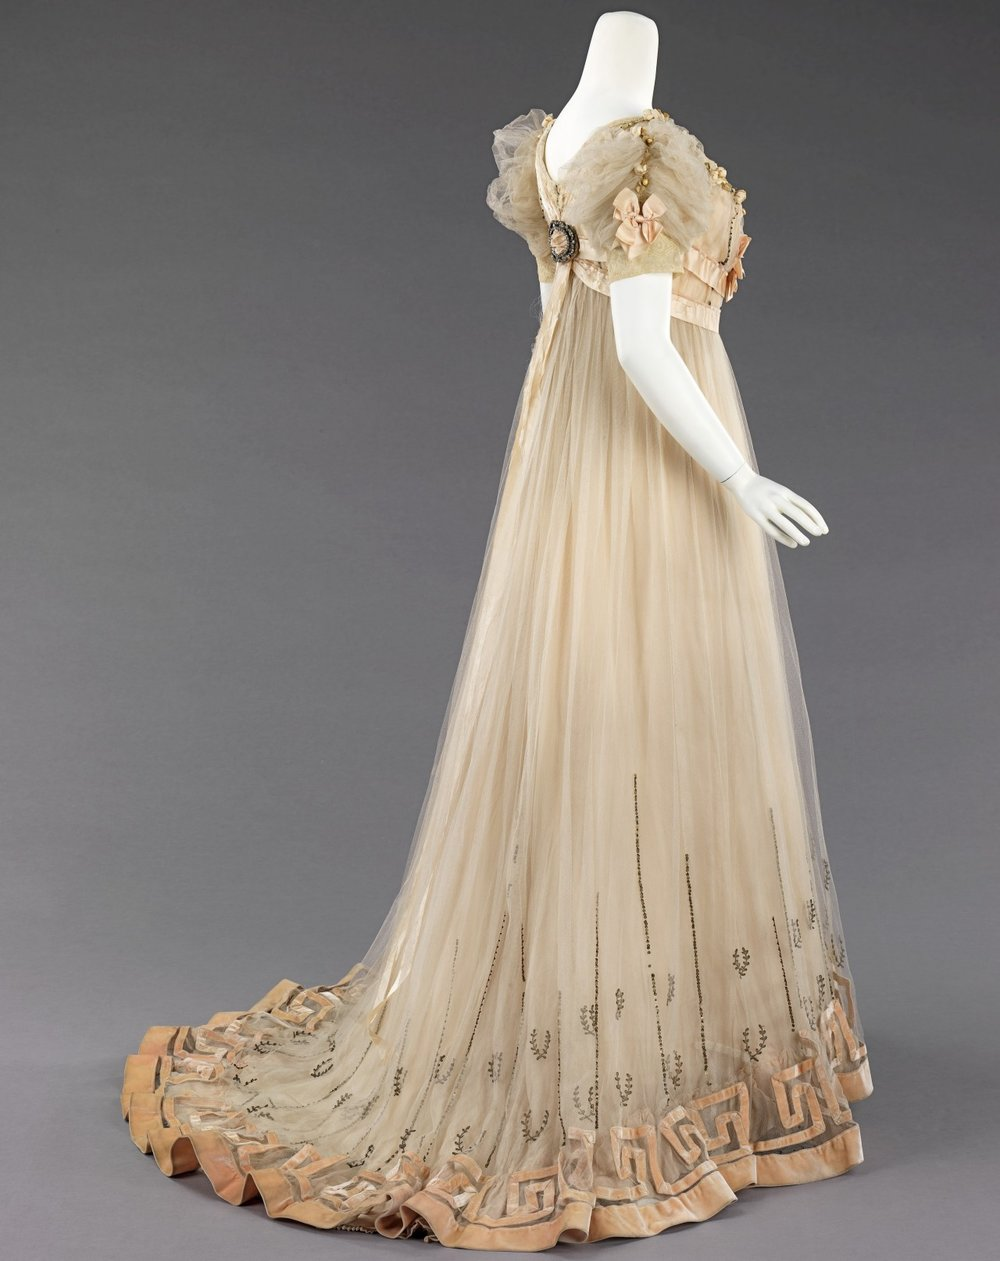 fashioninhistory :       Evening   Dress       House of Paquin       1905-07      Produced several years prior to the 1908 Hellenic designs of Paul Poiret, the raised waist and decorative references to Greek antiquity indicate this classical aesthetic and change of silhouette were in the air from 1905 on. As the leading house of couture druing the Belle Epoque, Paquin's promotion of this line would have been widely known to the public. The dress also incorporates signature decorative techniques such as velvet piping outlining peach satin ribbon at neckline and waist and the contrasting tones and reflections of silver, satin and velvet.  The Metropolitan Museum of Art